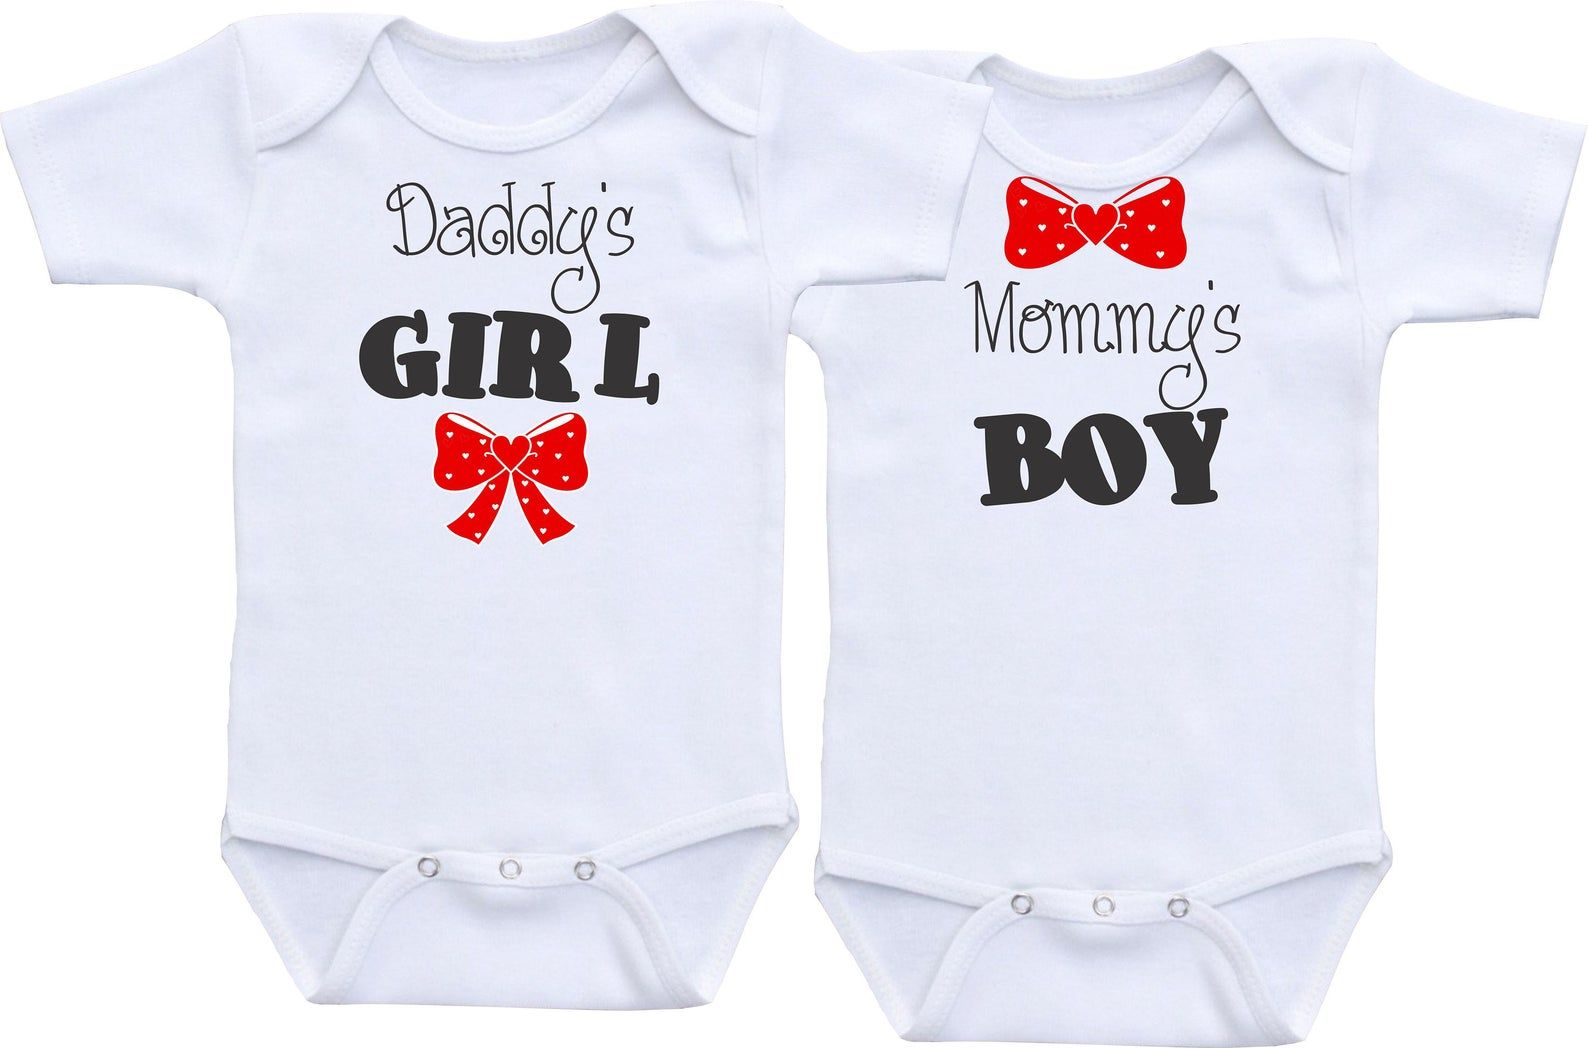 Baby Twin Onesies Twin Baby Shower Gift Twin Outfits Twin Clothes Boy Girl Twins Baby Onesies Twin Gift Little Miss Little Mister